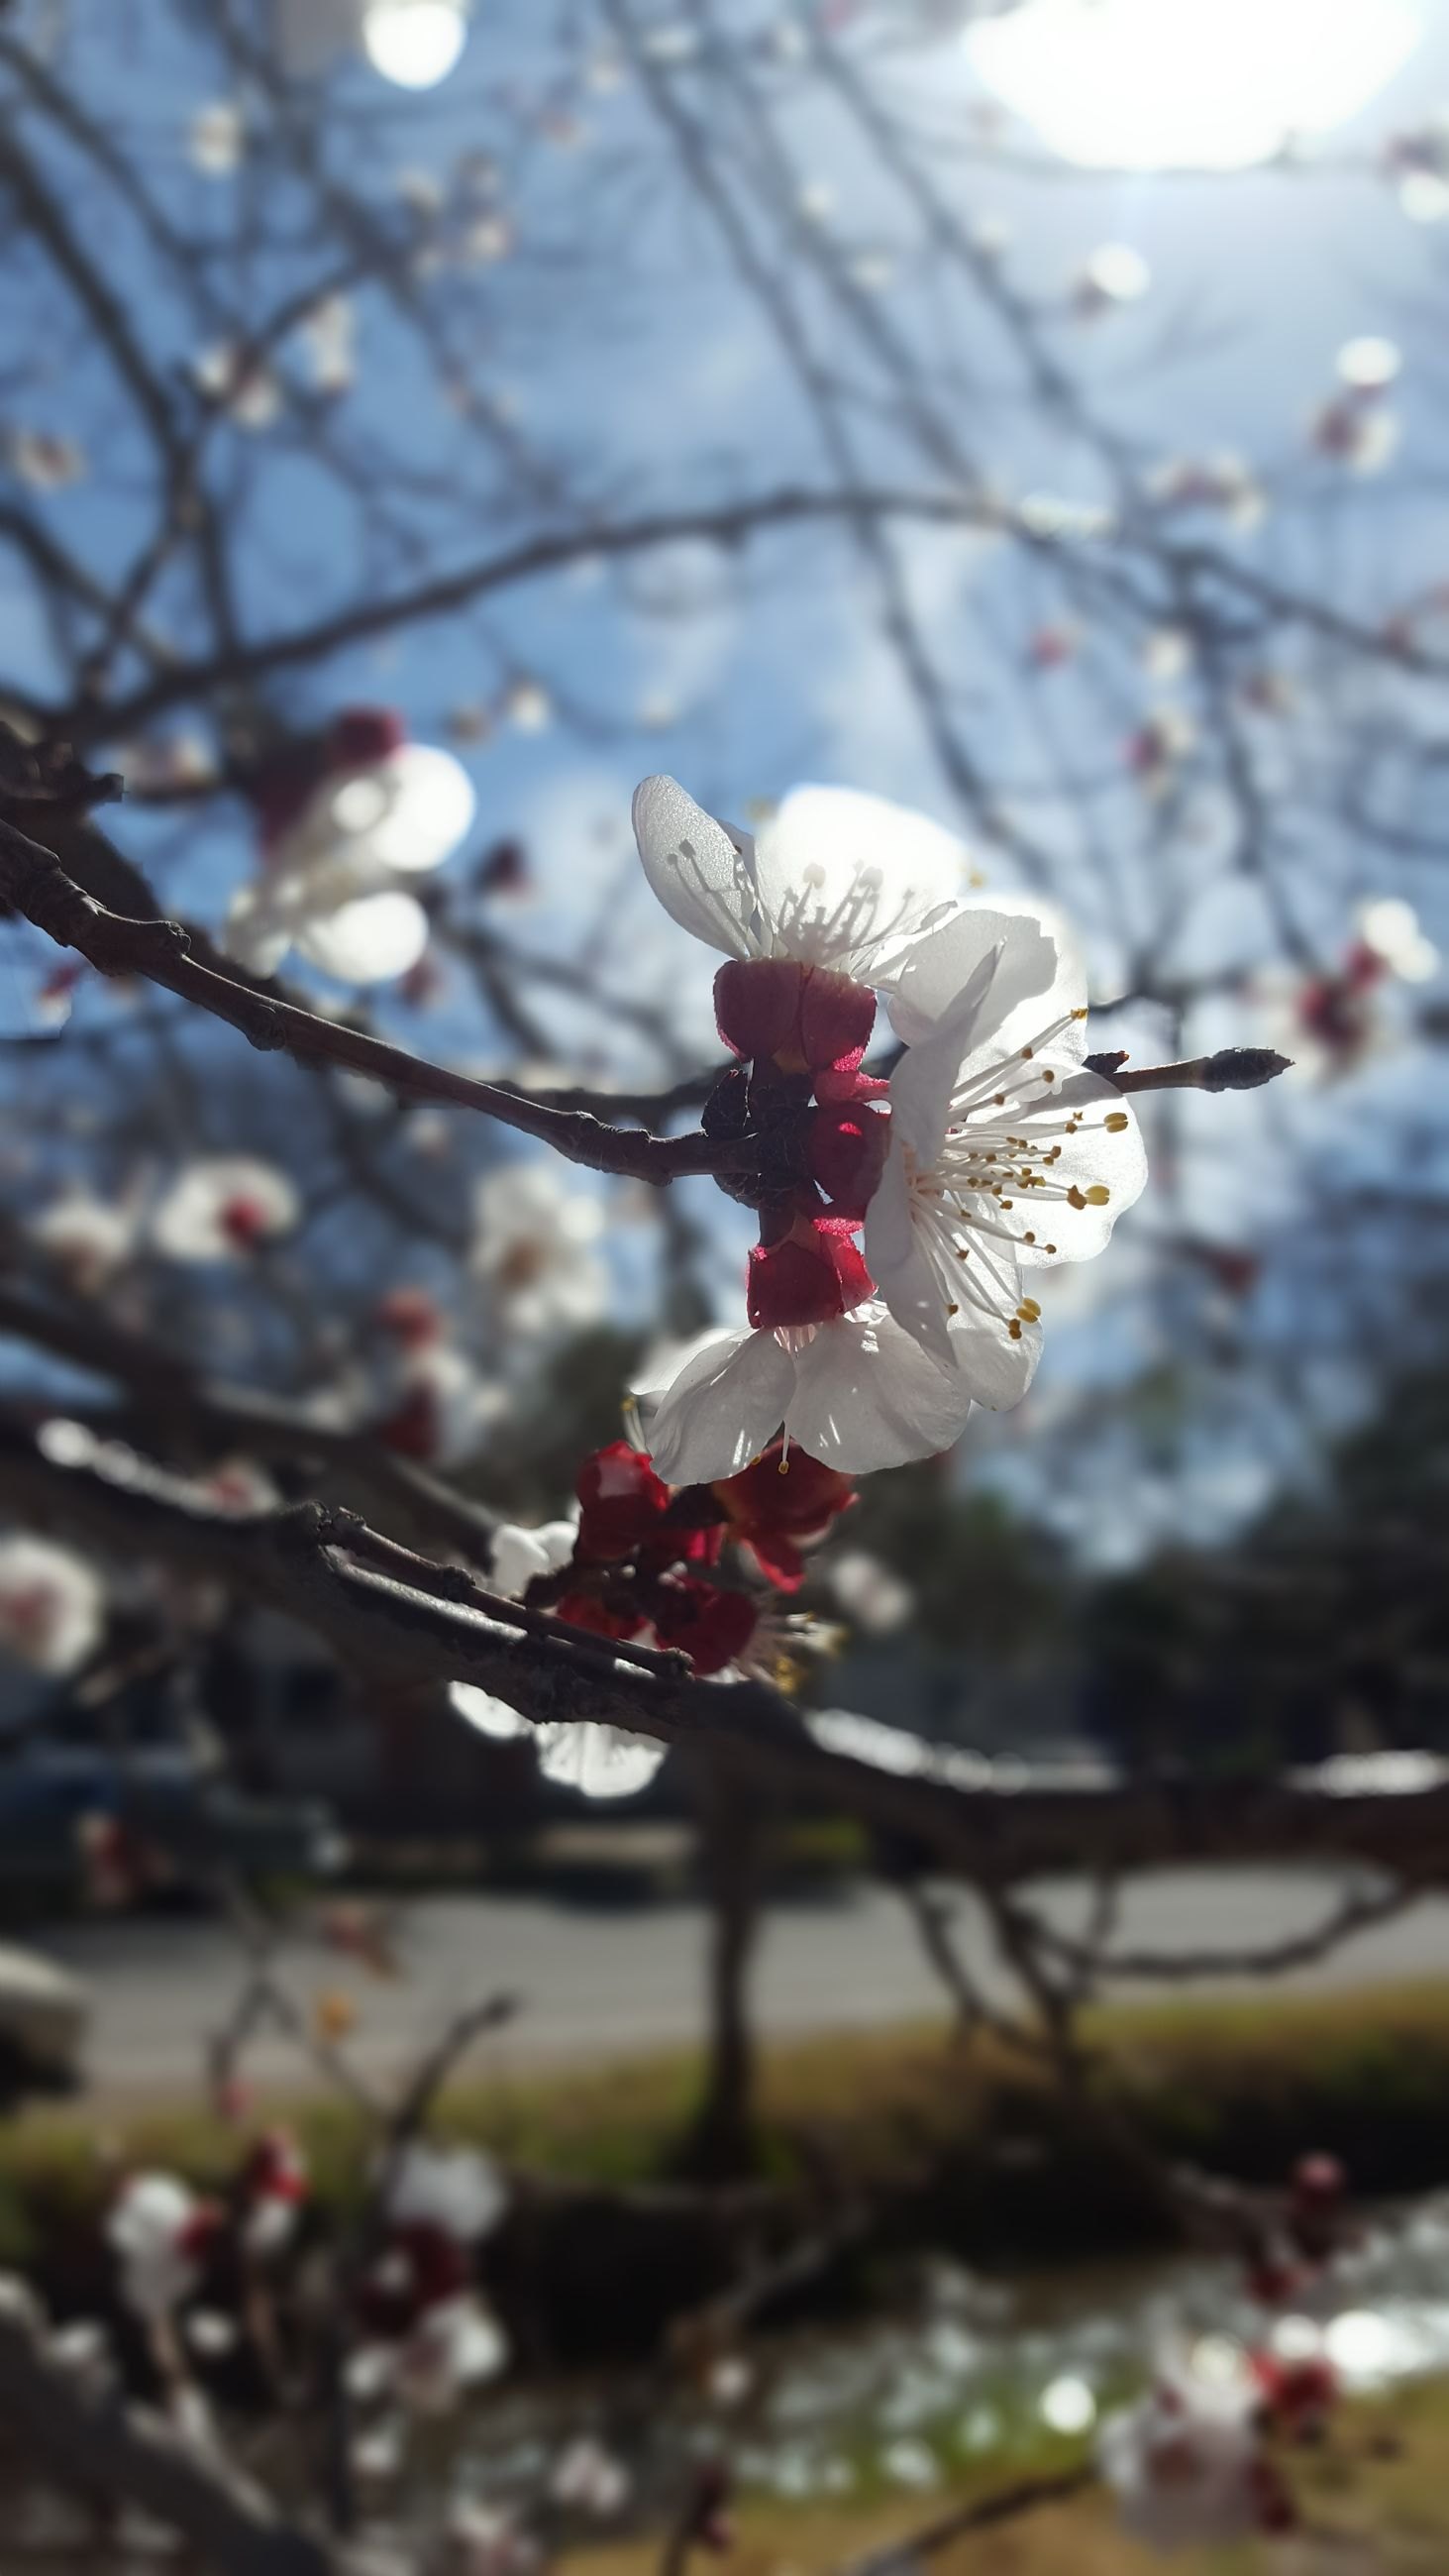 flower, fragility, petal, beauty in nature, freshness, growth, nature, white color, blossom, flower head, botany, branch, one animal, close-up, pollen, plum blossom, springtime, stamen, no people, day, tree, focus on foreground, animal themes, outdoors, blooming, pollination, animals in the wild